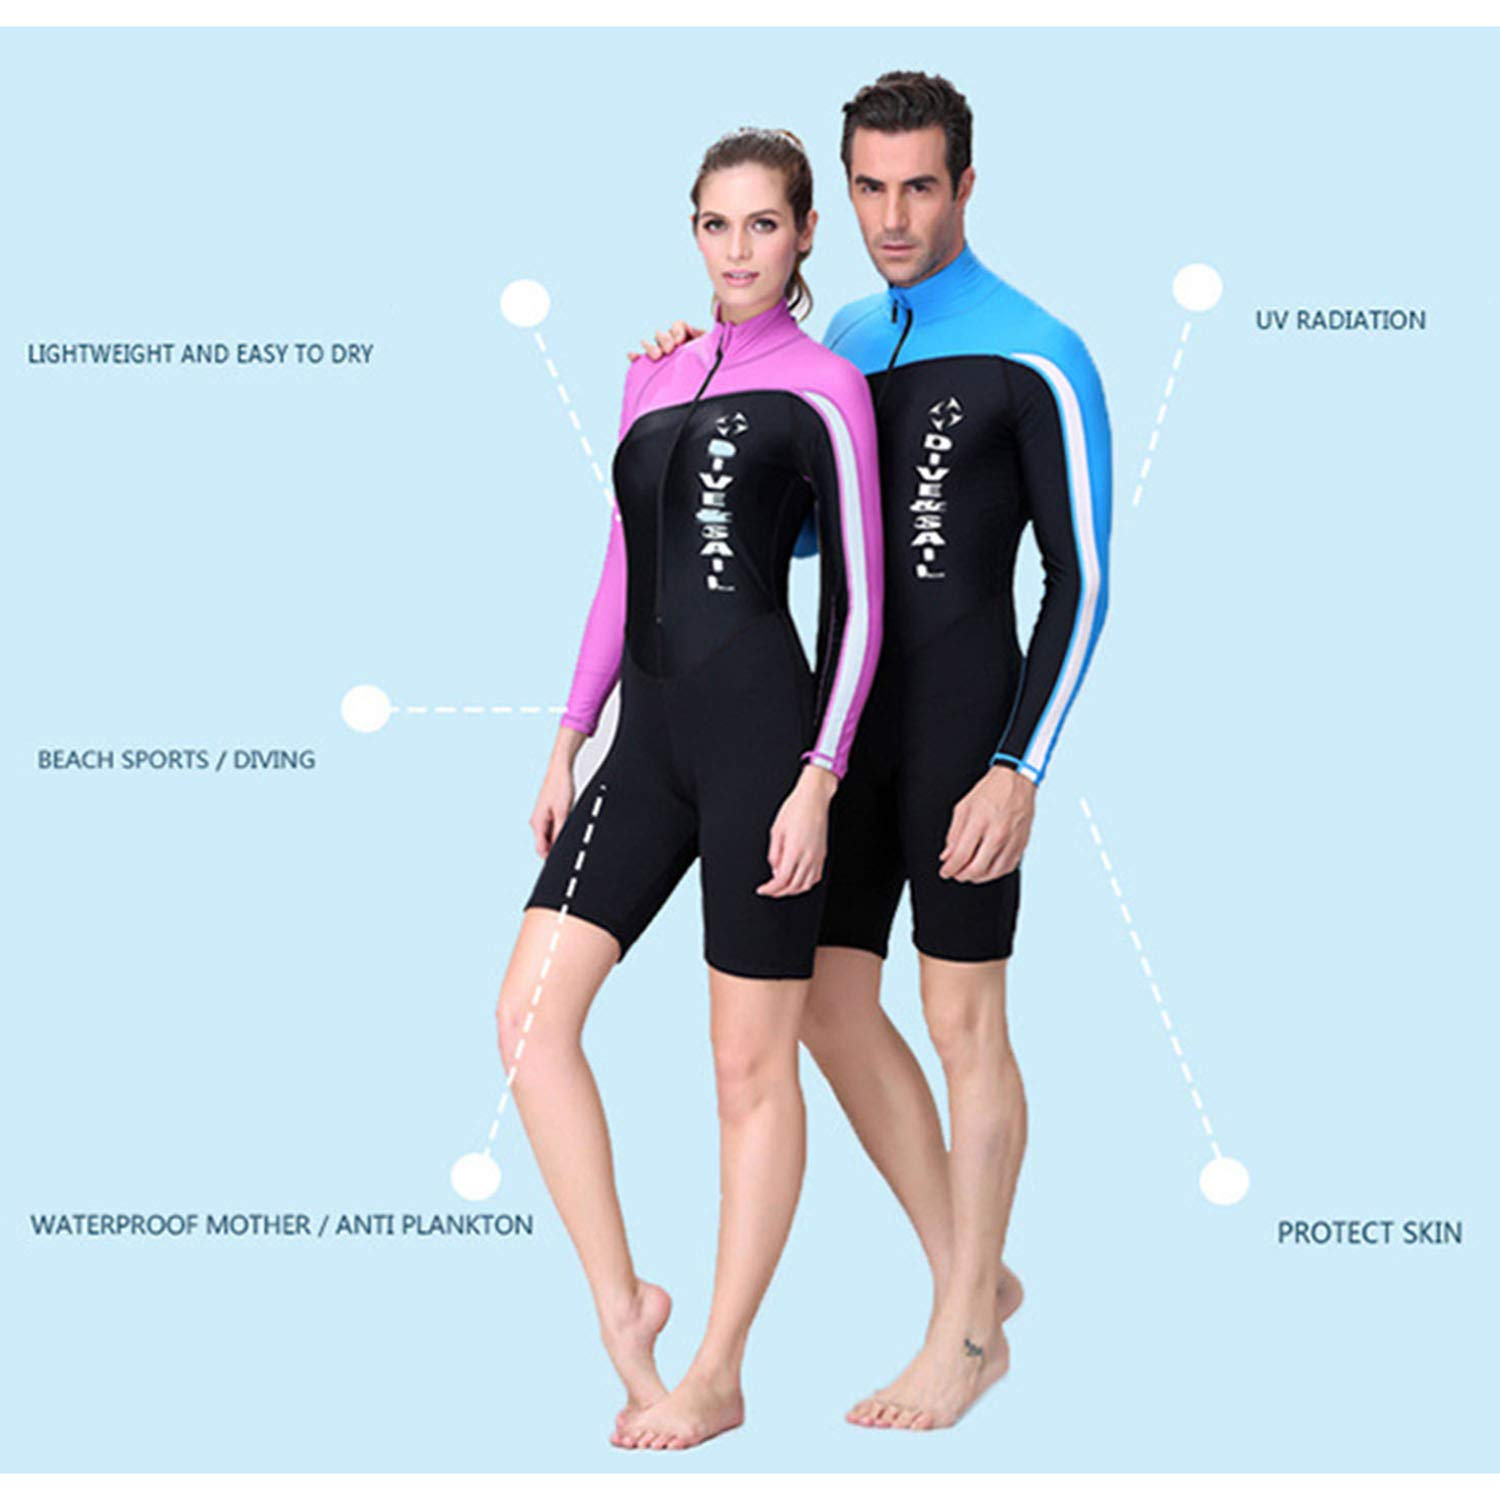 Men's UV Protection Wetsuits Zipper Snorkeling Lycra Skin Diving Surfing Suit Swimwear for Spring Summer Autumn XL - Blue by DIVE & SAIL (Image #4)